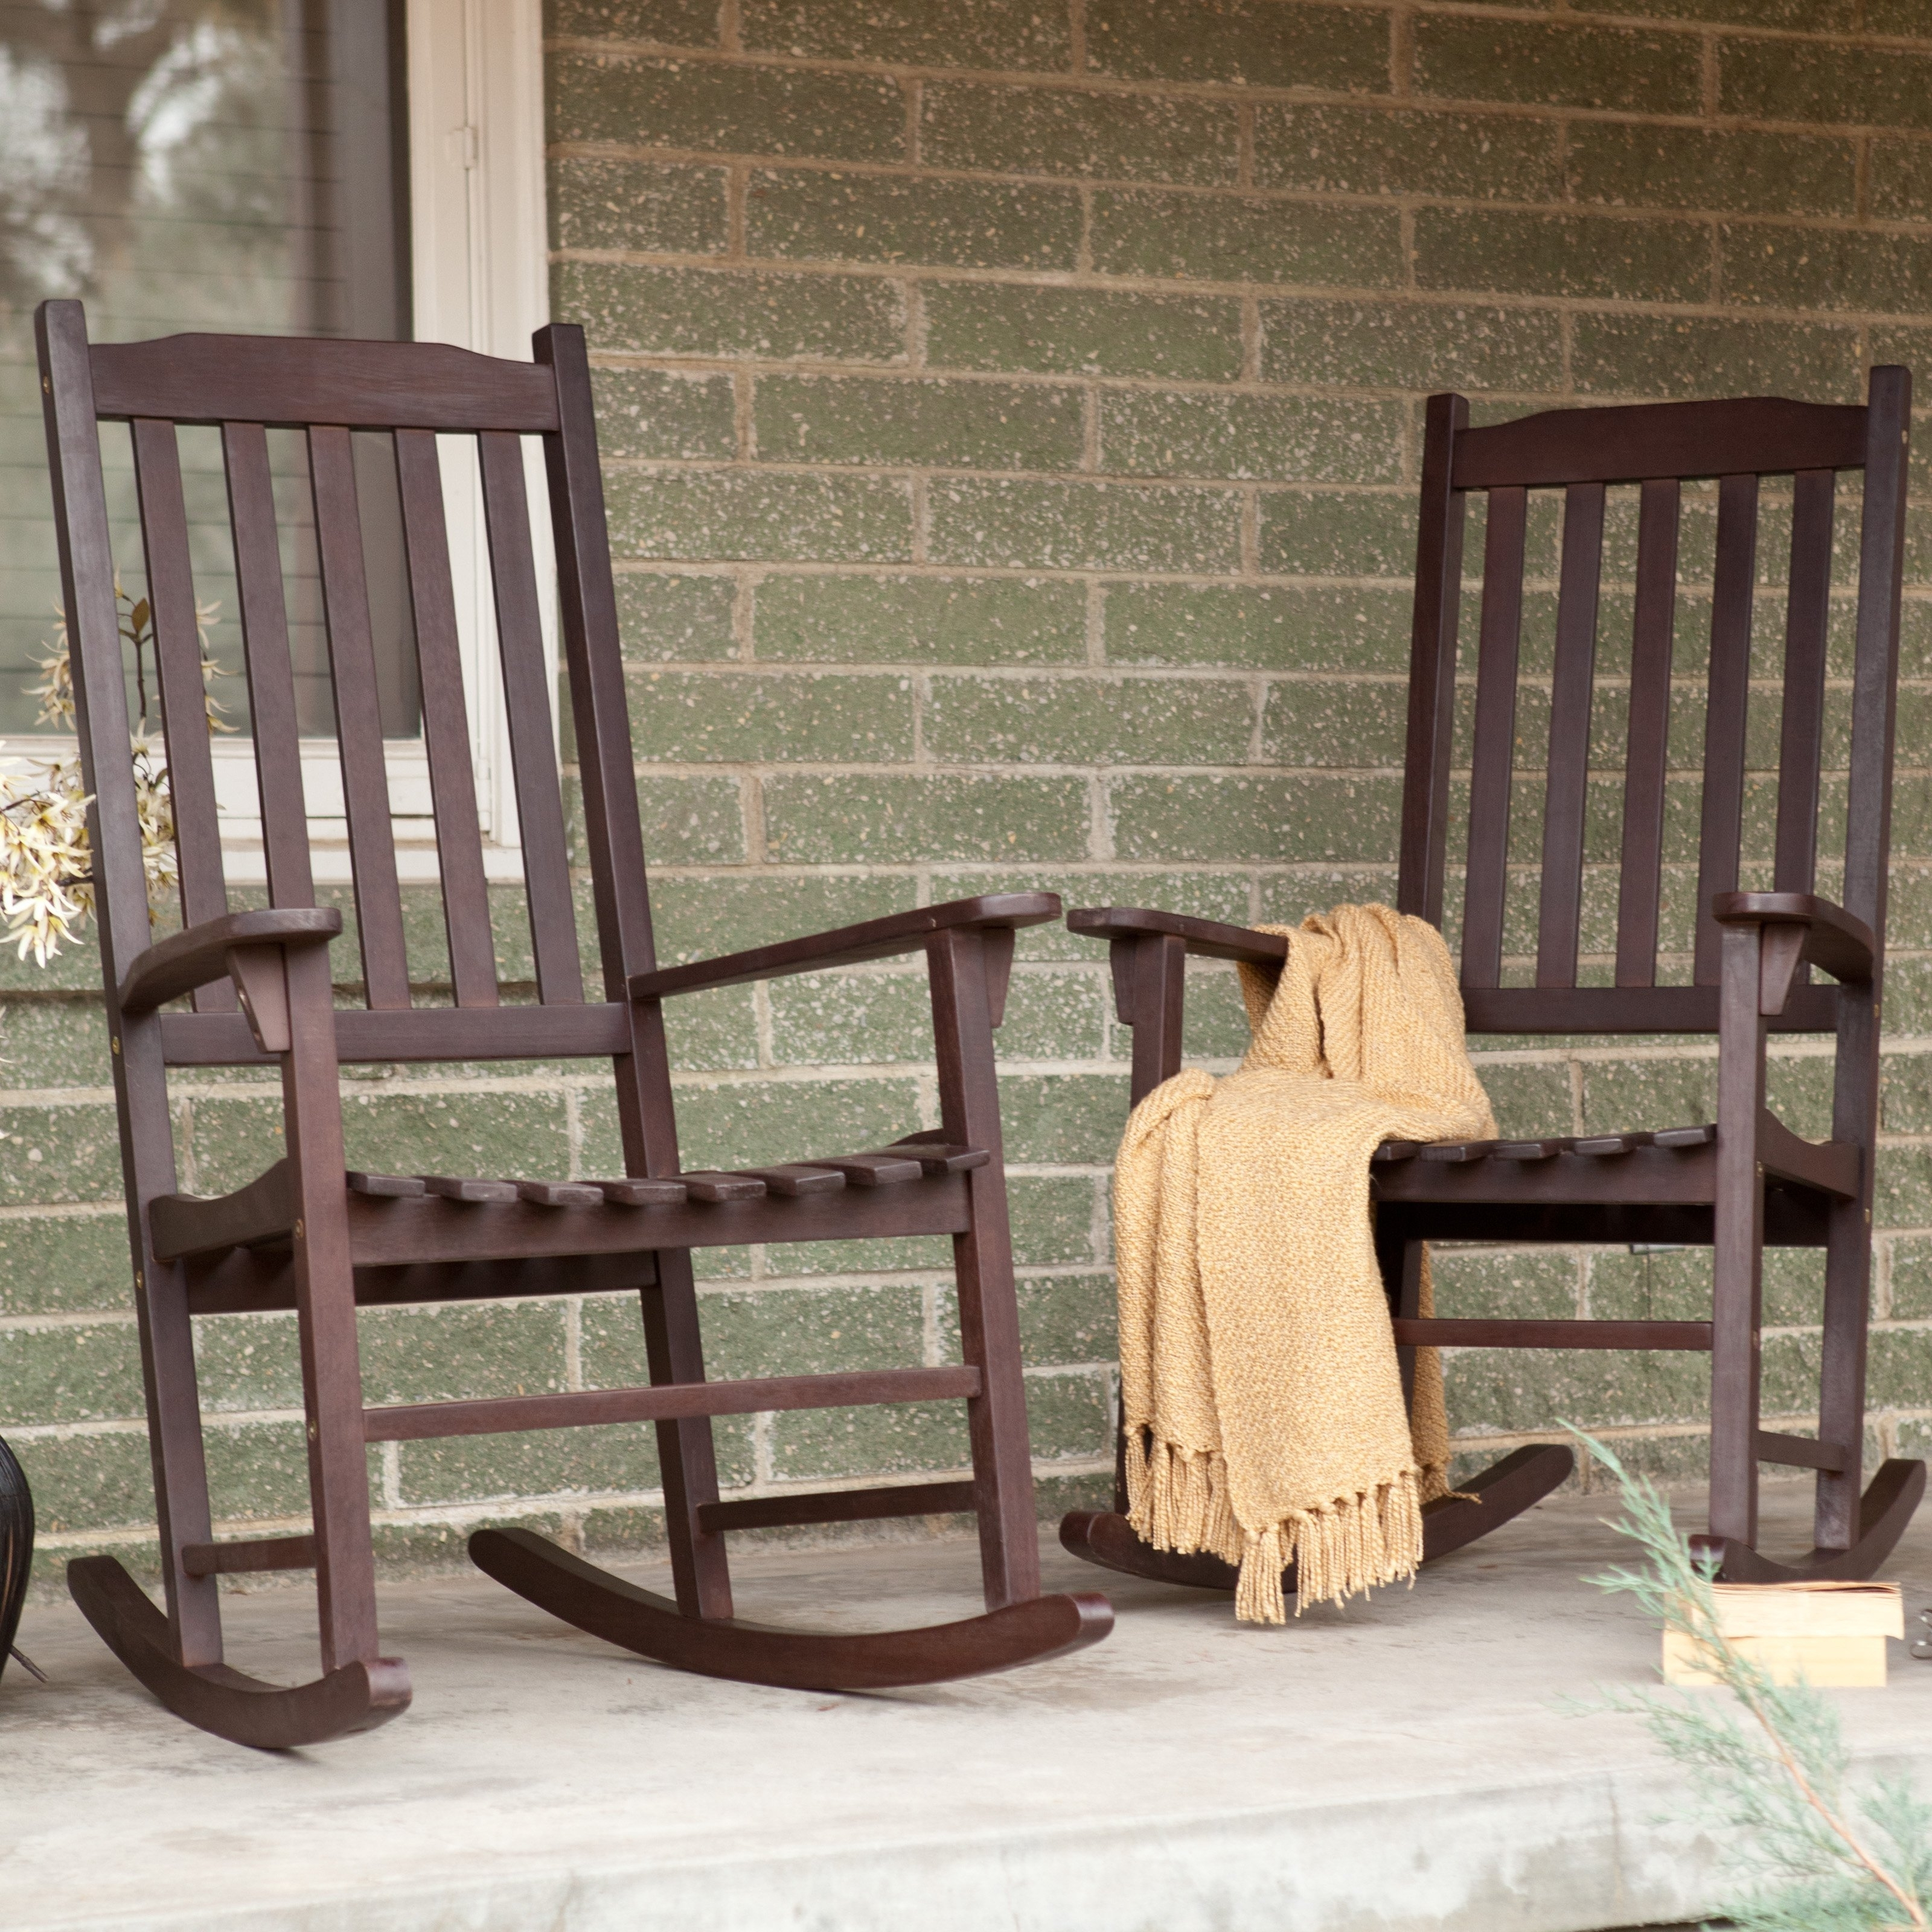 Fashionable Used Patio Rocking Chairs In How To Choose Comfortable Outdoor Rocking Chairs – Yonohomedesign (View 7 of 15)